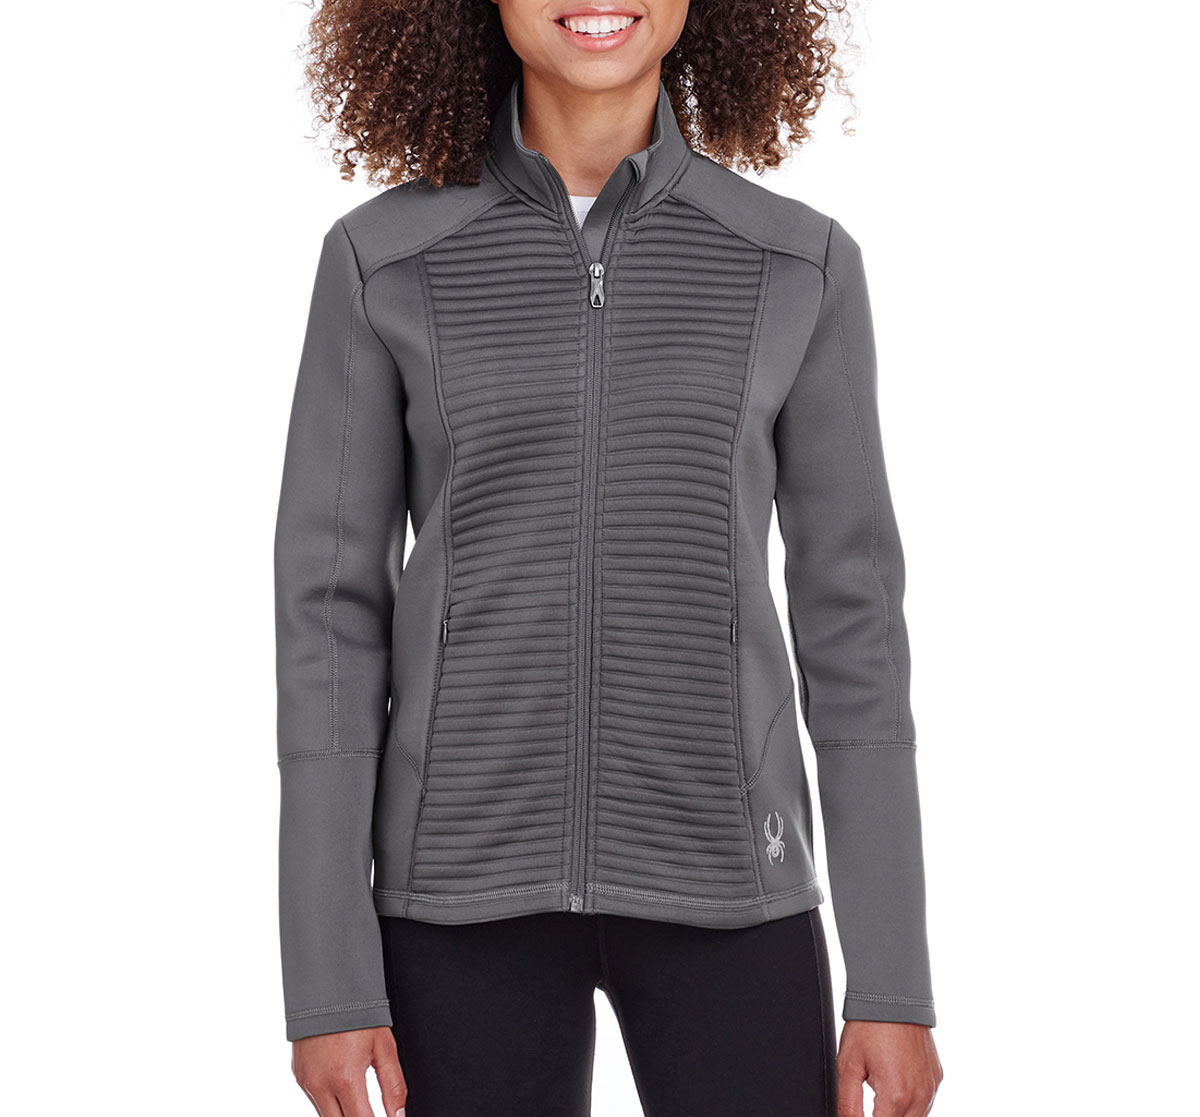 Spyder Ladies Venom Full-Zip Jacket